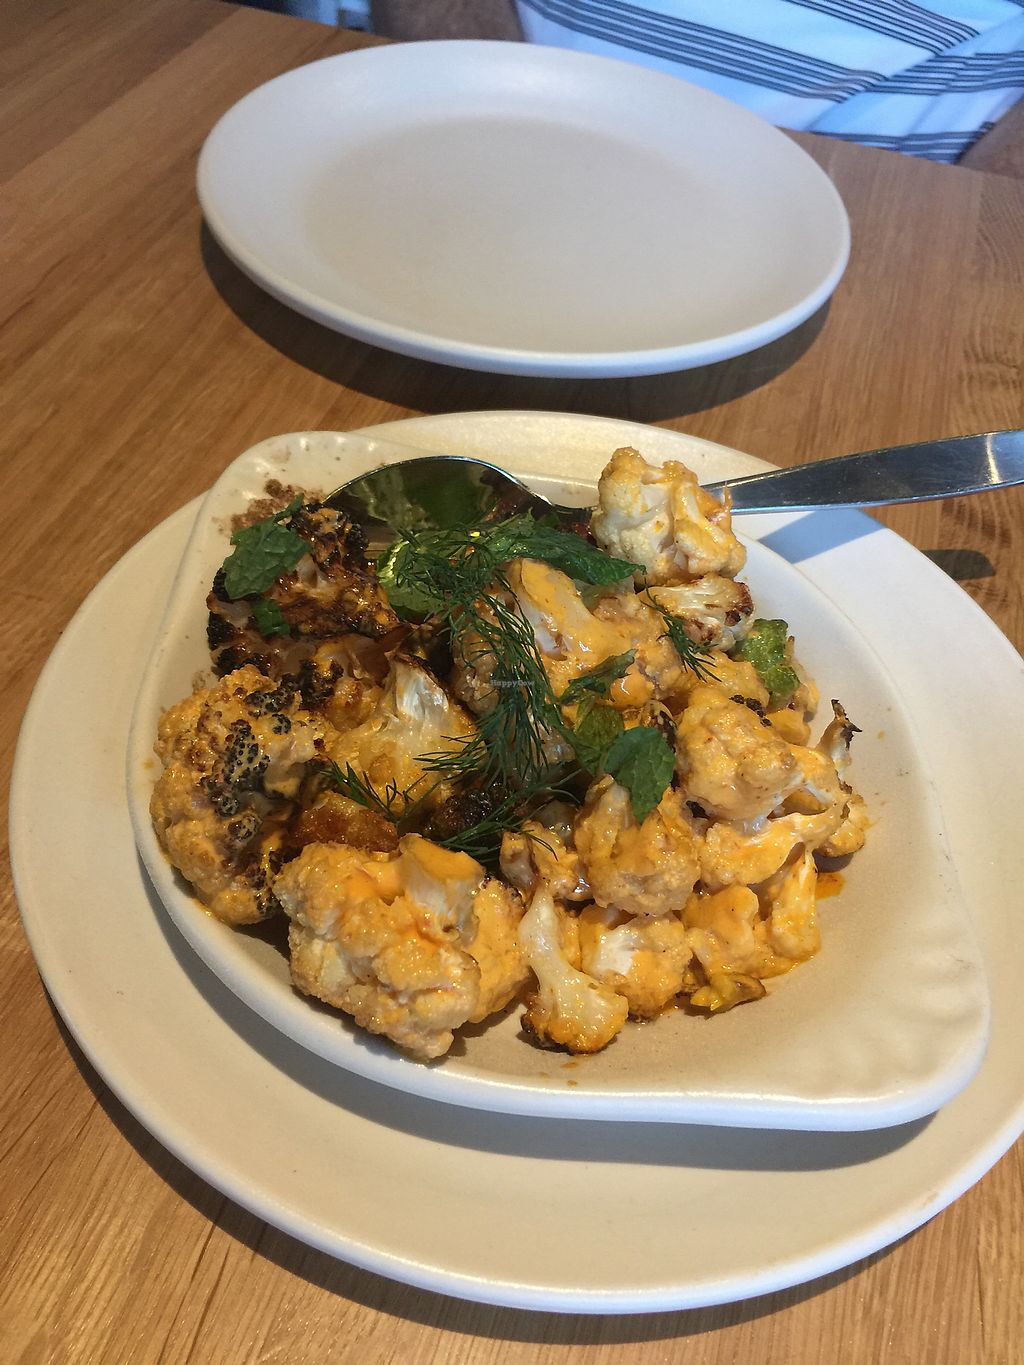 """Photo of True Food Kitchen  by <a href=""""/members/profile/ACCVeg"""">ACCVeg</a> <br/>Cauliflower  <br/> August 1, 2017  - <a href='/contact/abuse/image/97480/287676'>Report</a>"""